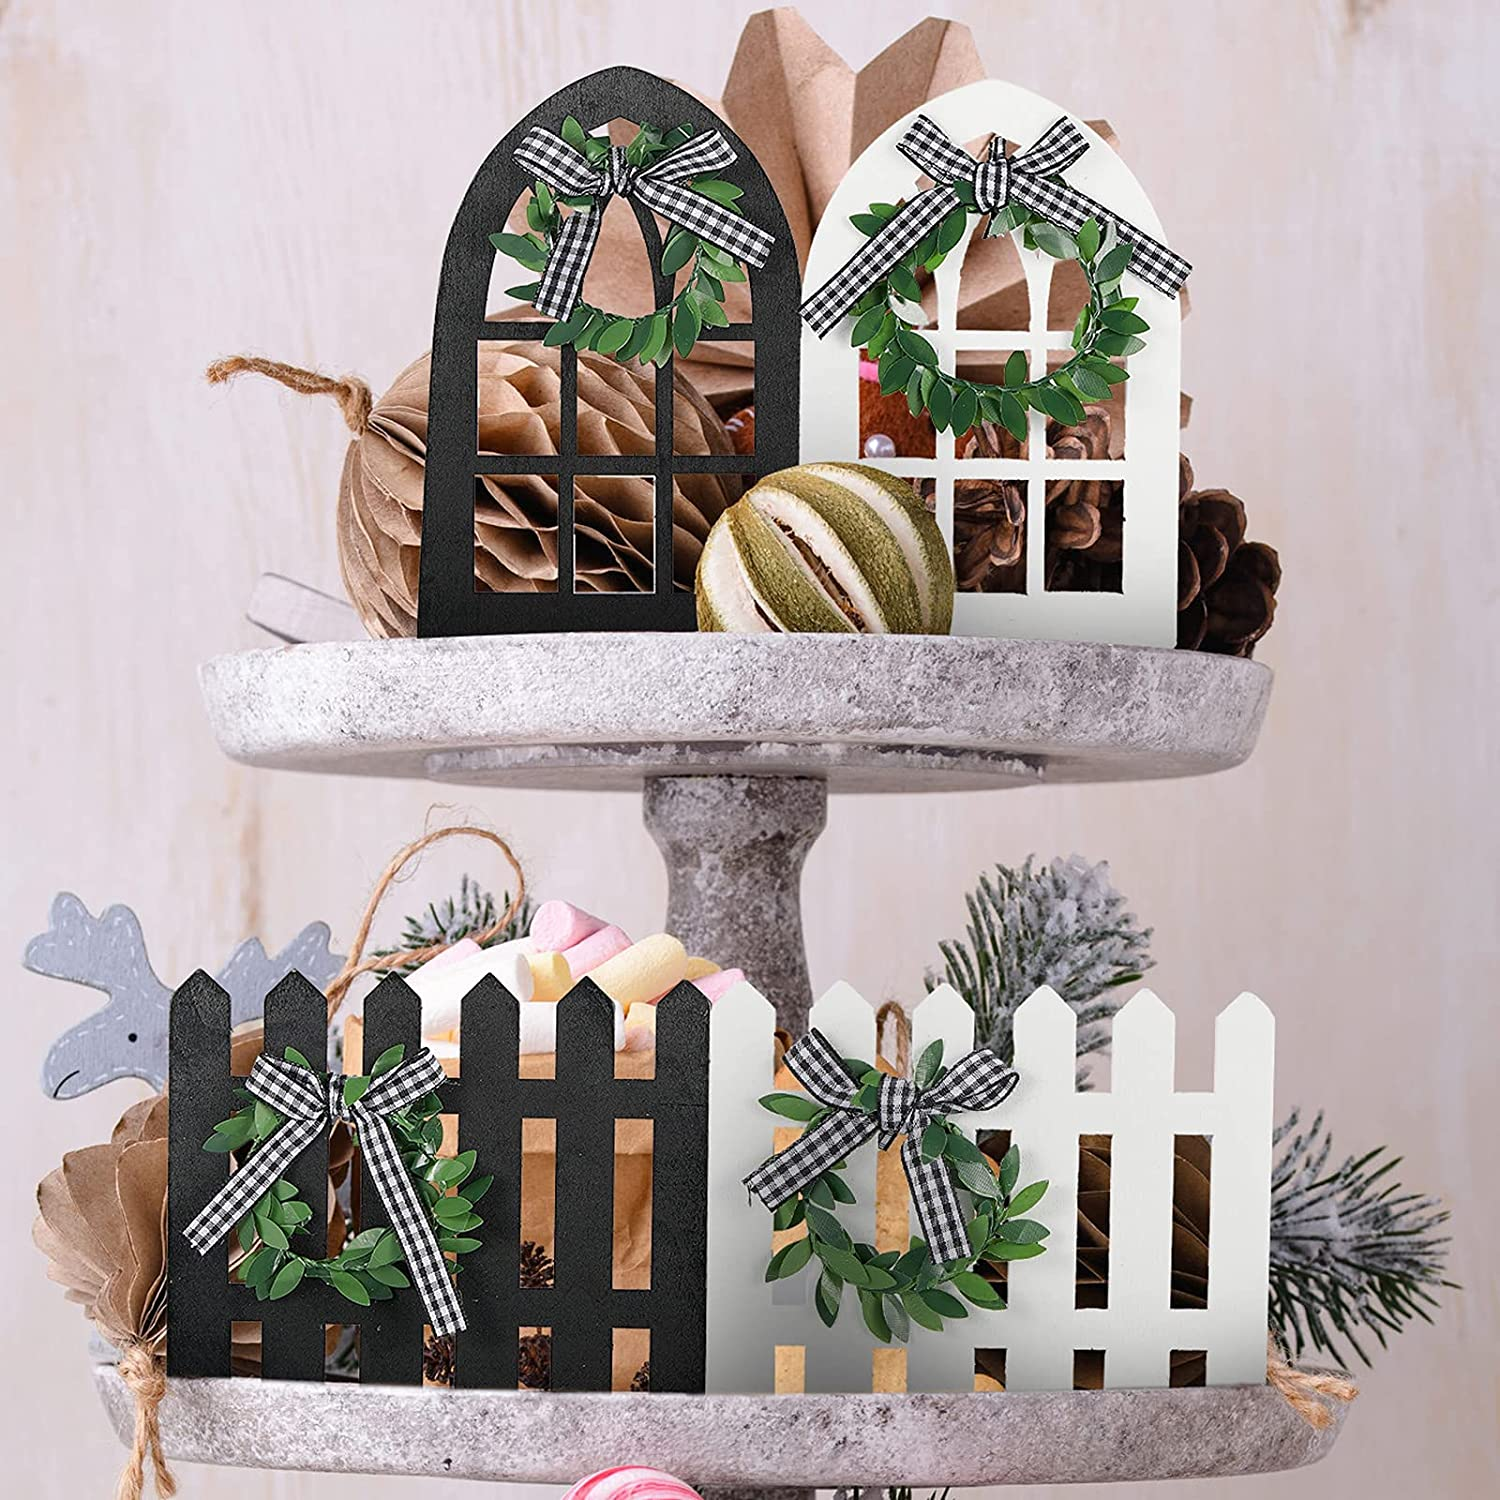 Jetec 4 Pieces Farmhouse Tiered Tray Decor Wood Arch Window and Picket Fence Mini Black and White Plaid Rustic Tiered Tray Items for Farmhouse Home Wedding Party Decor